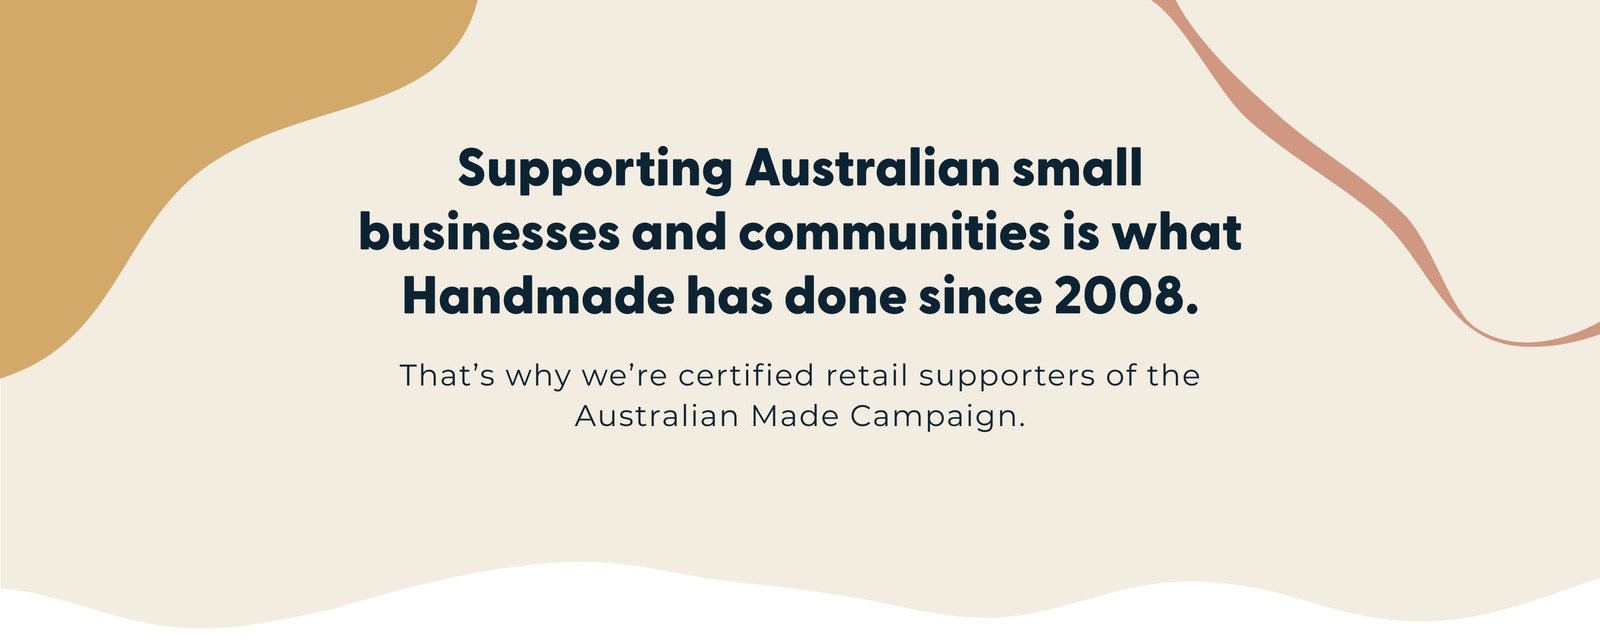 Supporting Australian small businesses and communities is what Handmade has done since 2008.